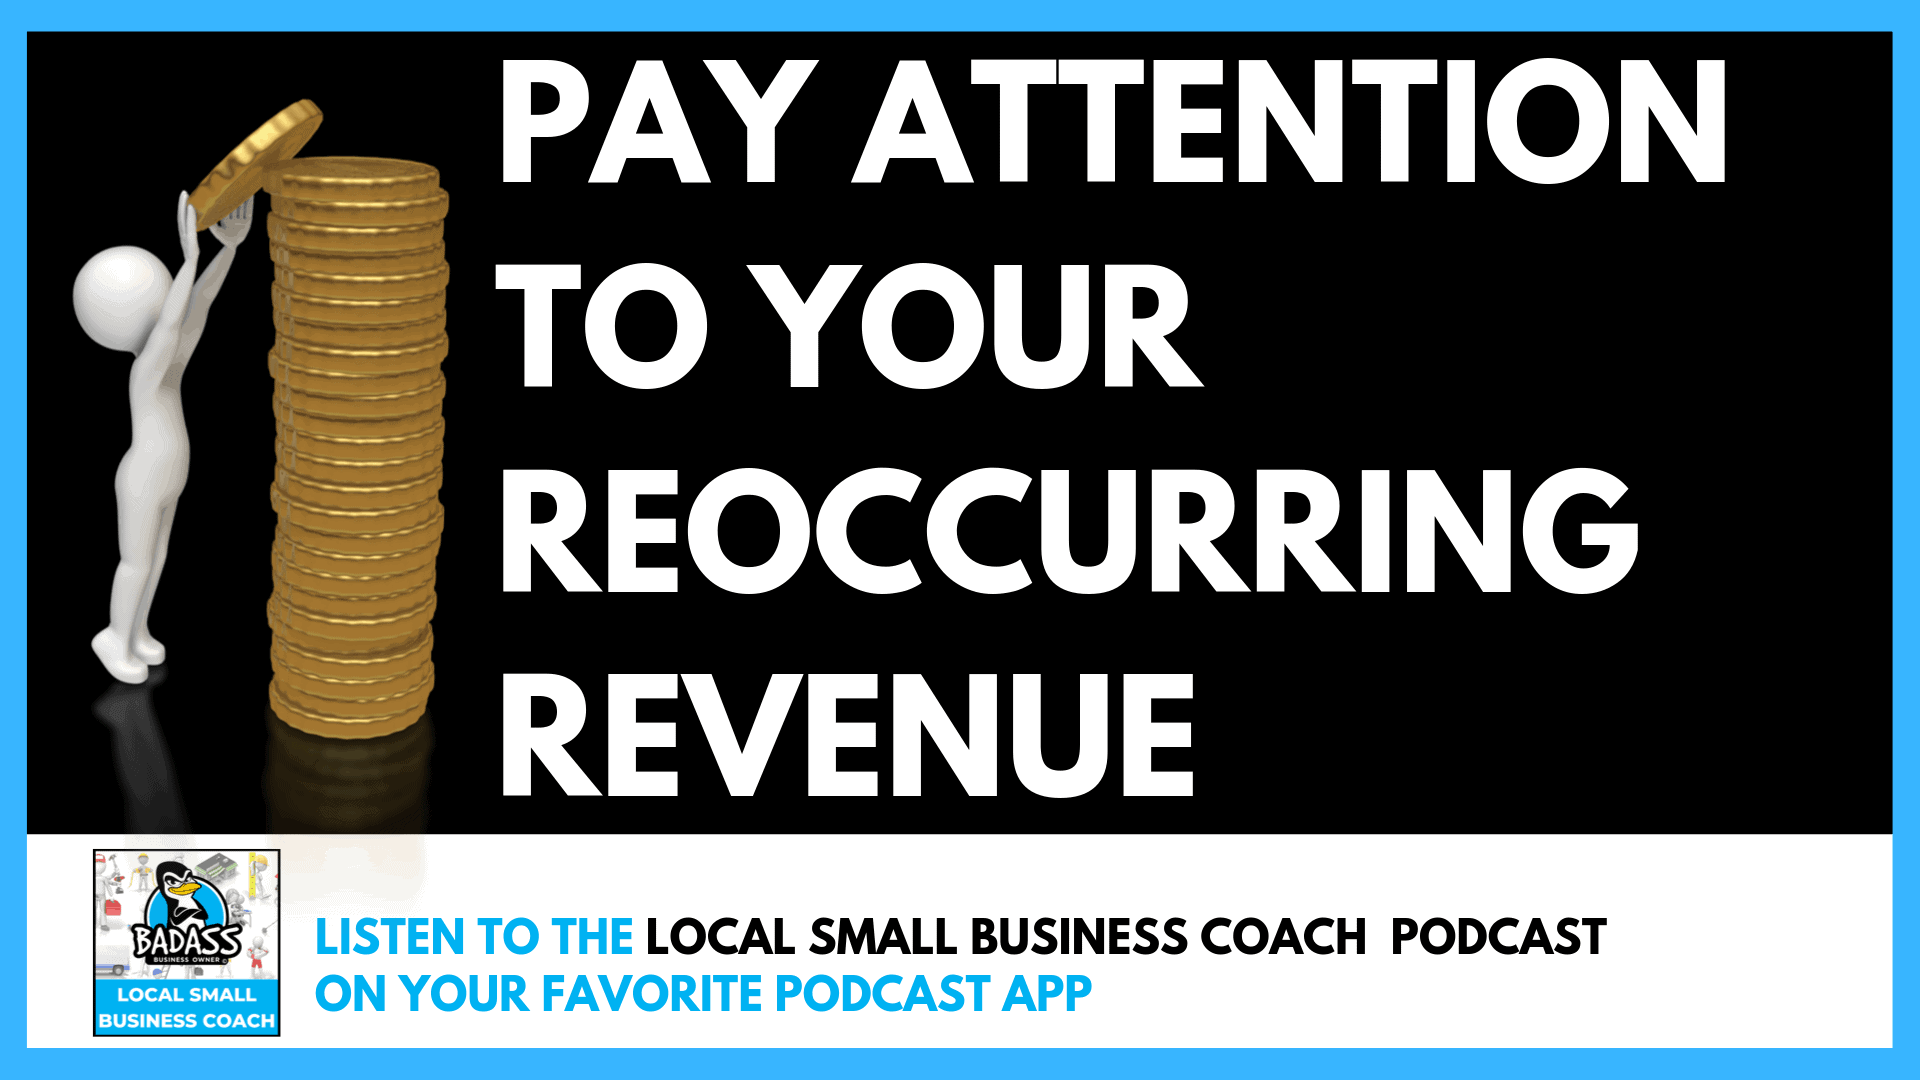 Pay Attention to Your Reoccurring Revenue